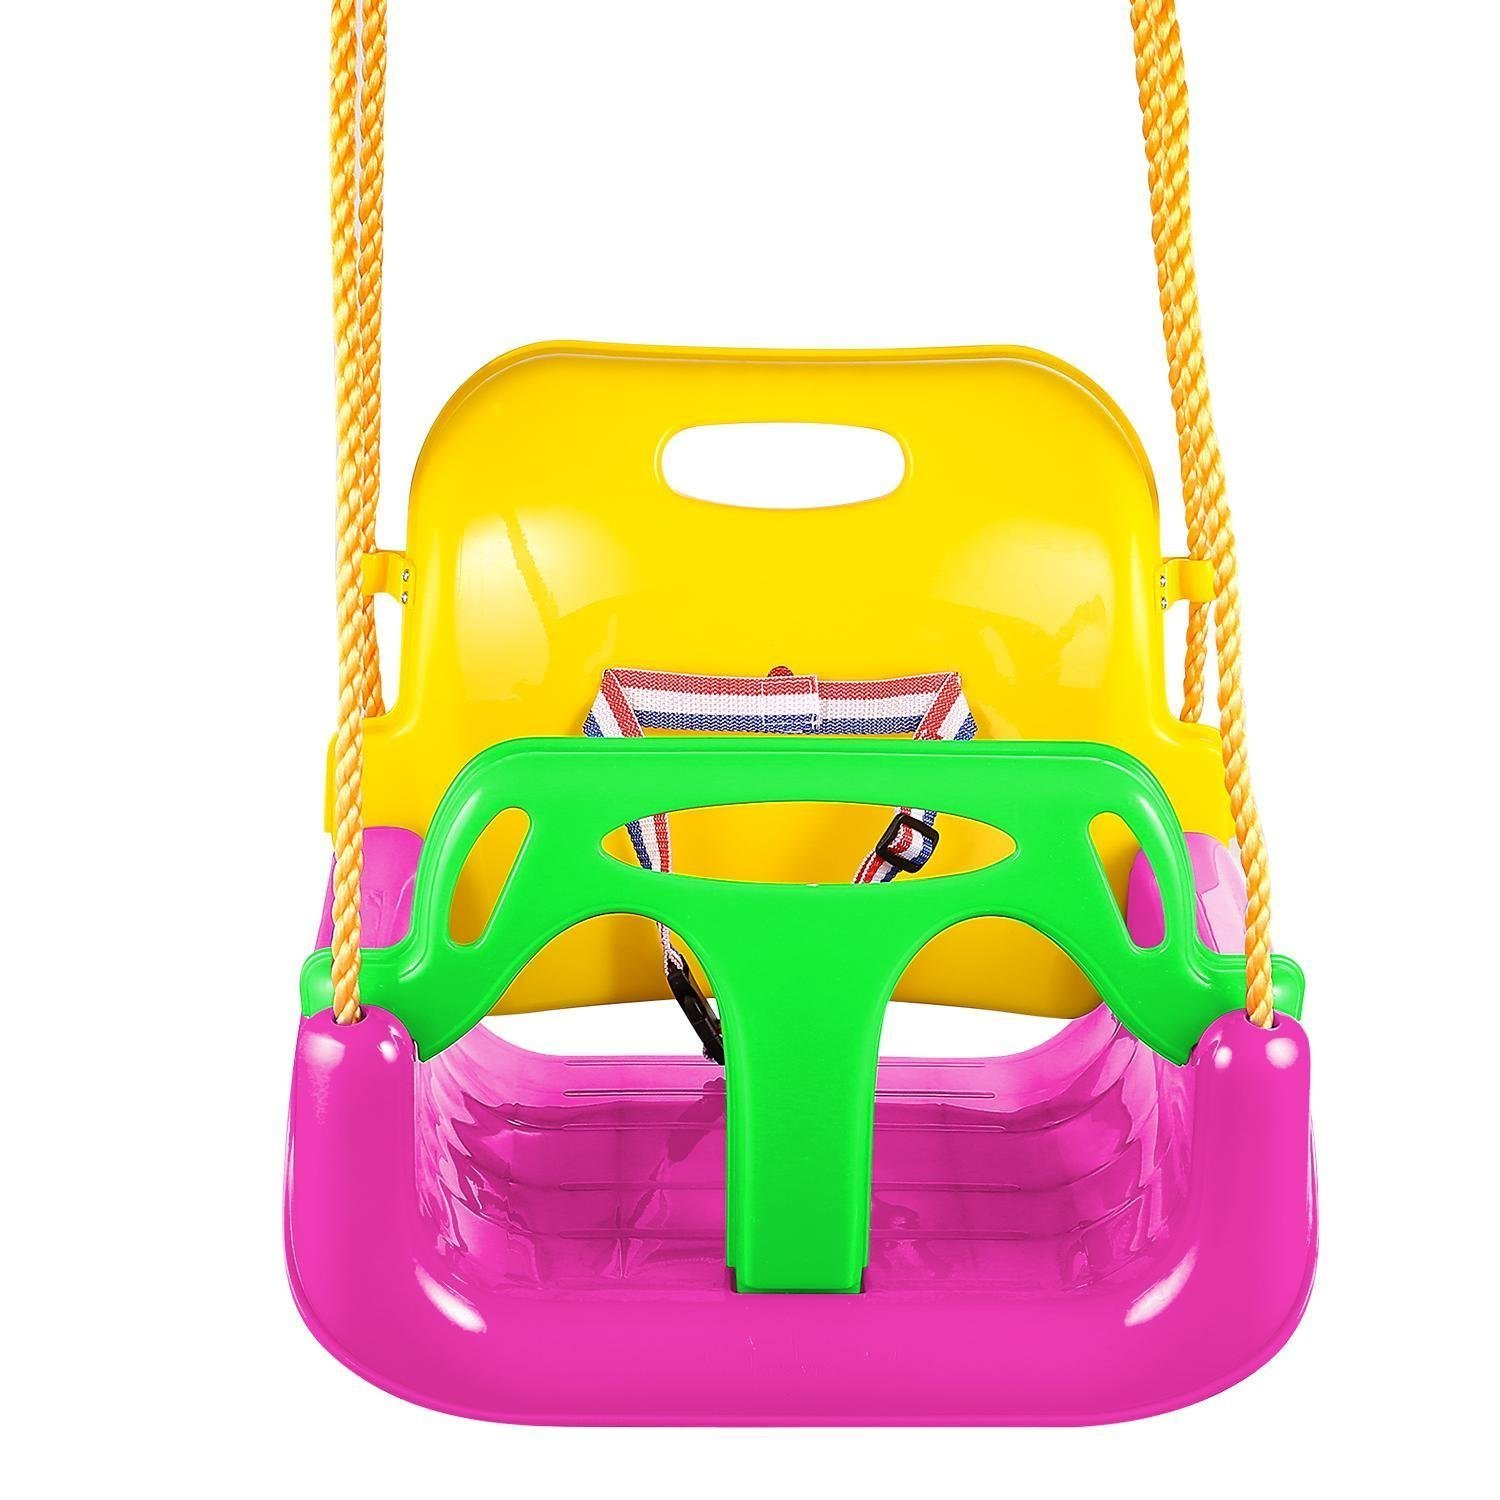 Toddler Swing Seat, Baby High Back Full Bucket 3 in 1 Swing Seat with Heavy Duty Chains Playground Swing Set Accessories (pink)